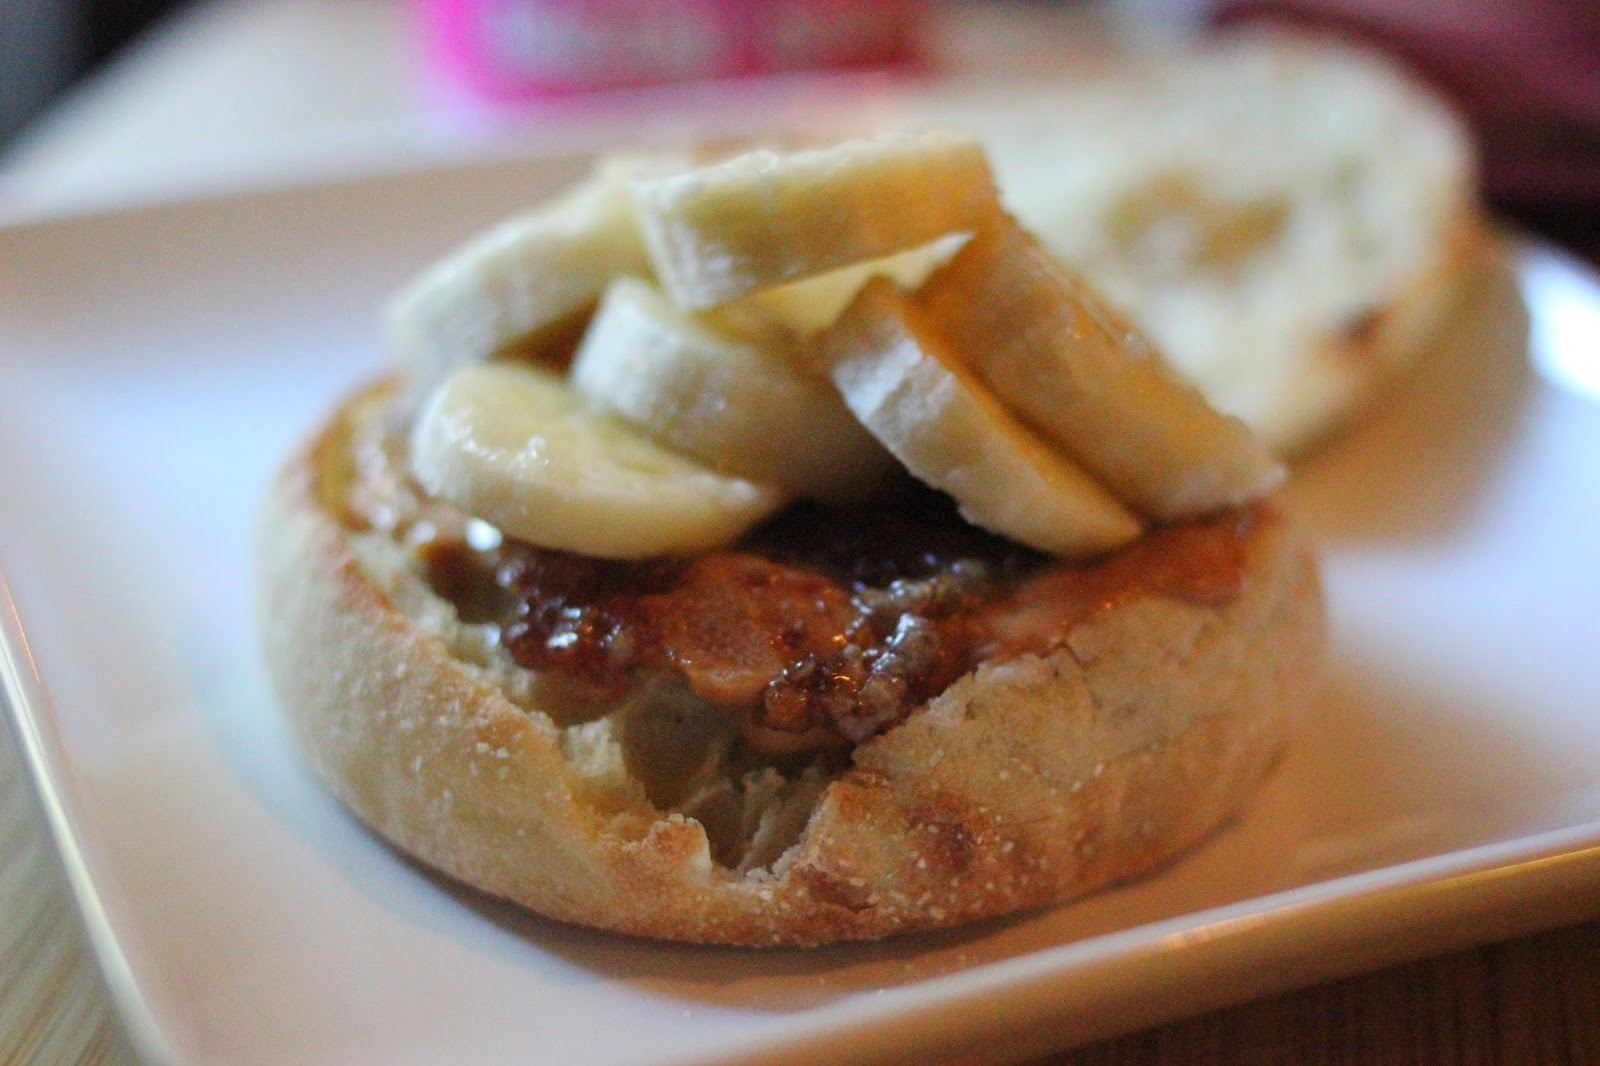 The Elvis Breakfast Sandwich with bacon jam.  It consists of peanut butter, spreadable bacon, and bananas on an English muffin.    Bacon Jams review.